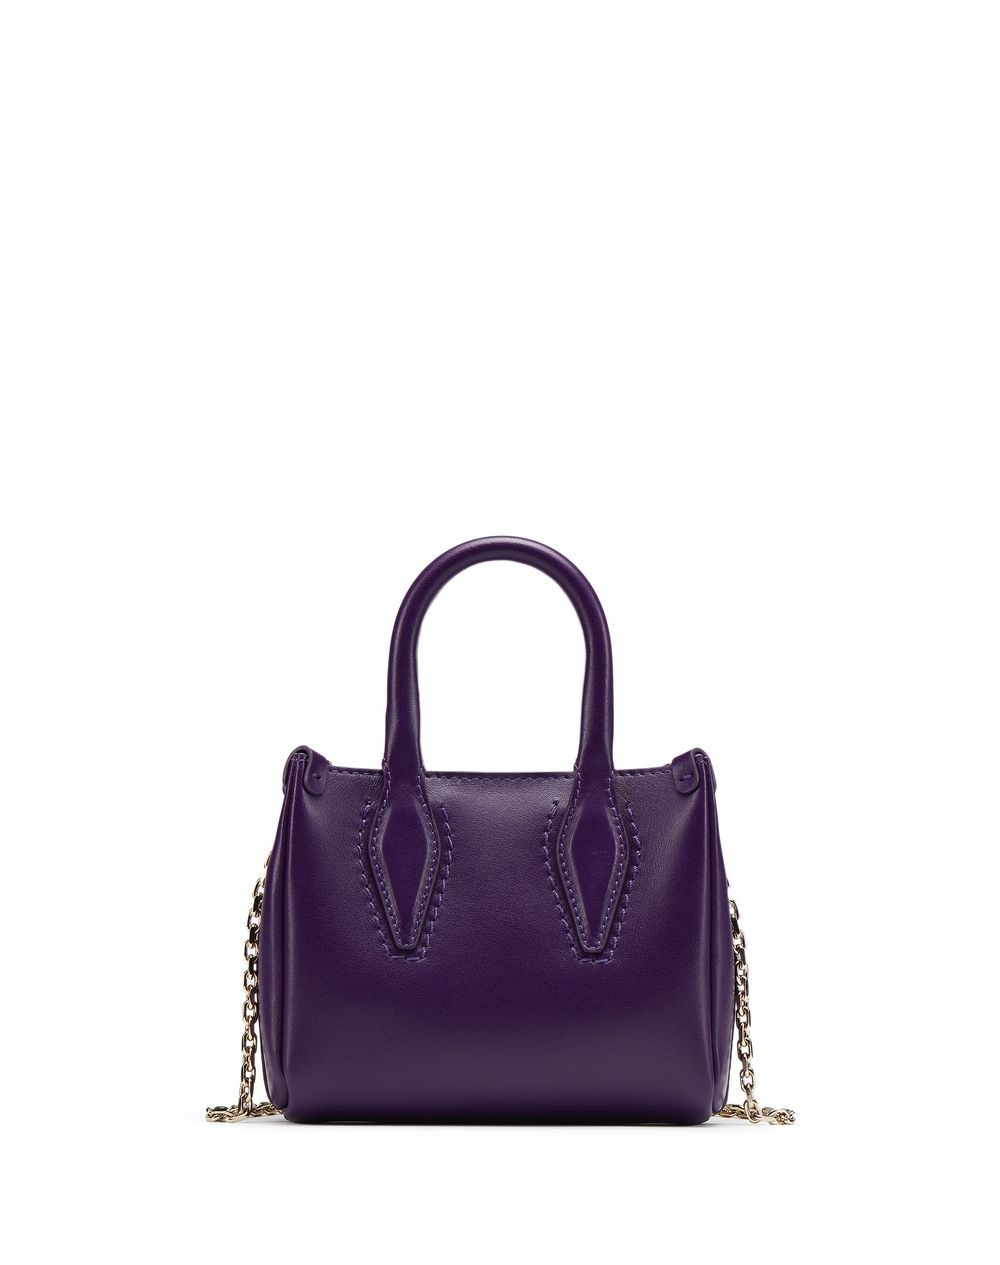 "MICRO DARK PURPLE ""JOURNEE"" BAG - Lanvin"